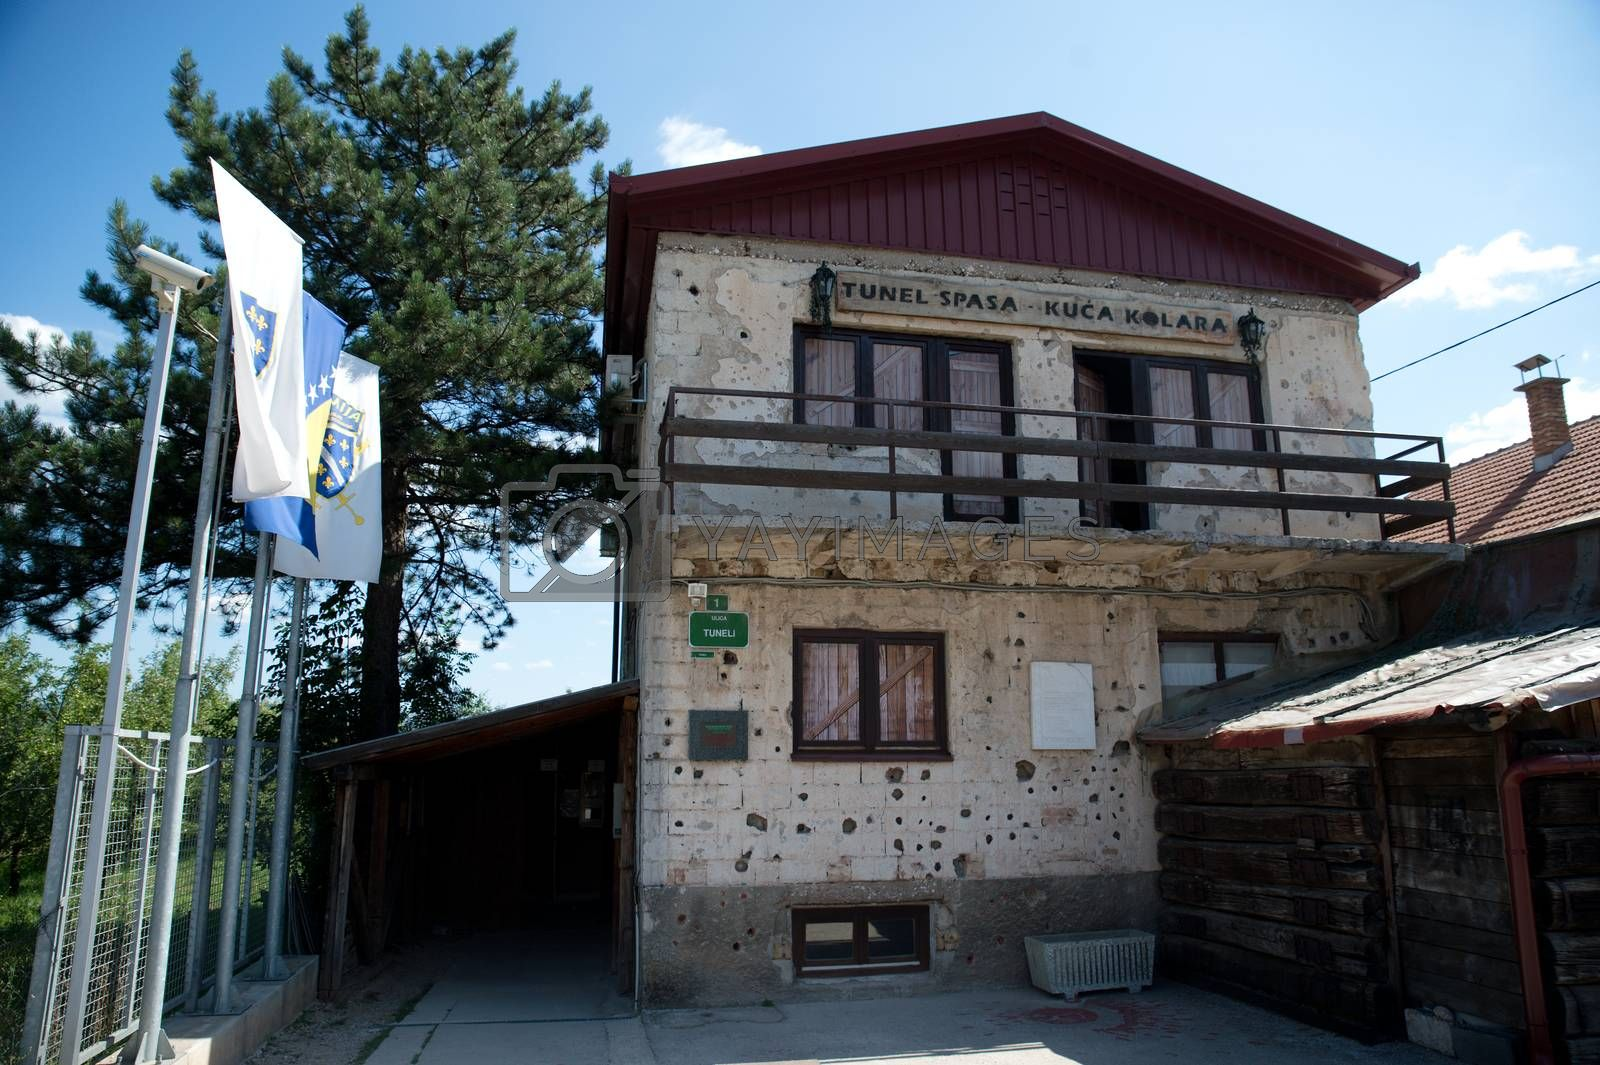 Sarajevo, Bosnia - July 7, 2016:The house through which Sarajevo Tunnel connected the city with other parts during the Siege of Sarajevo constructed in 1993. Note the bullet holes on walls.